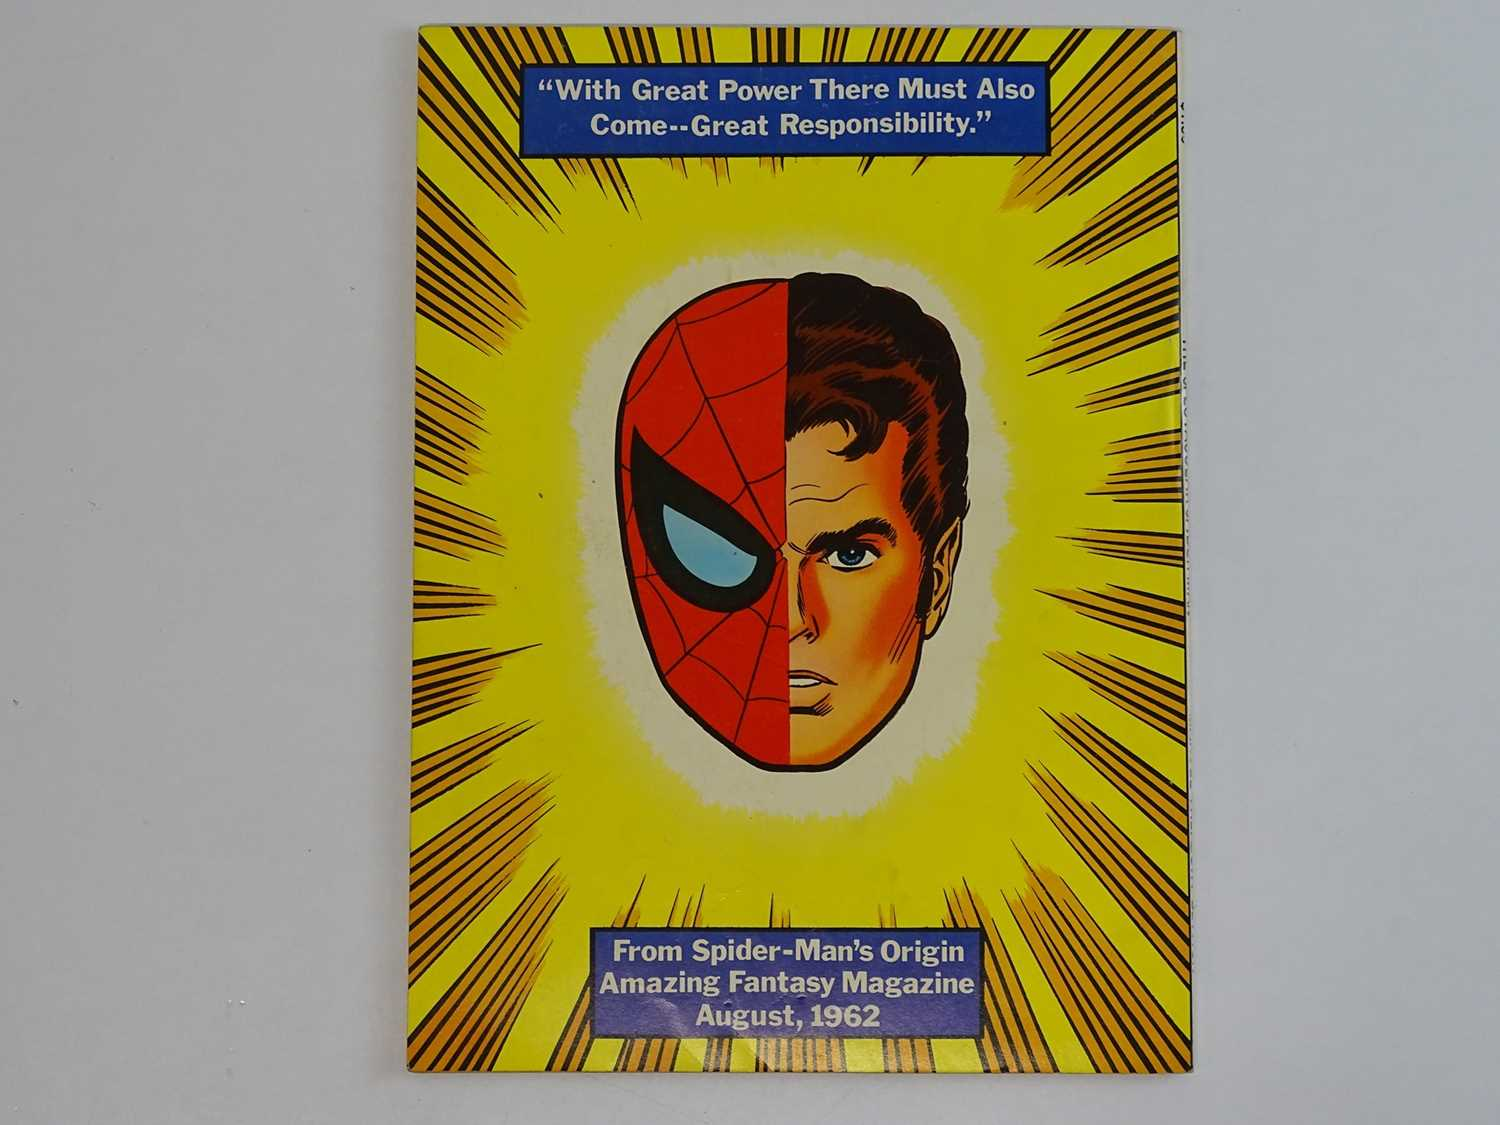 Marvel Treasury Edition #1 Spectacular Spider-Man (Marvel - 1974) Includes Gil Kane and Steve - Image 2 of 8